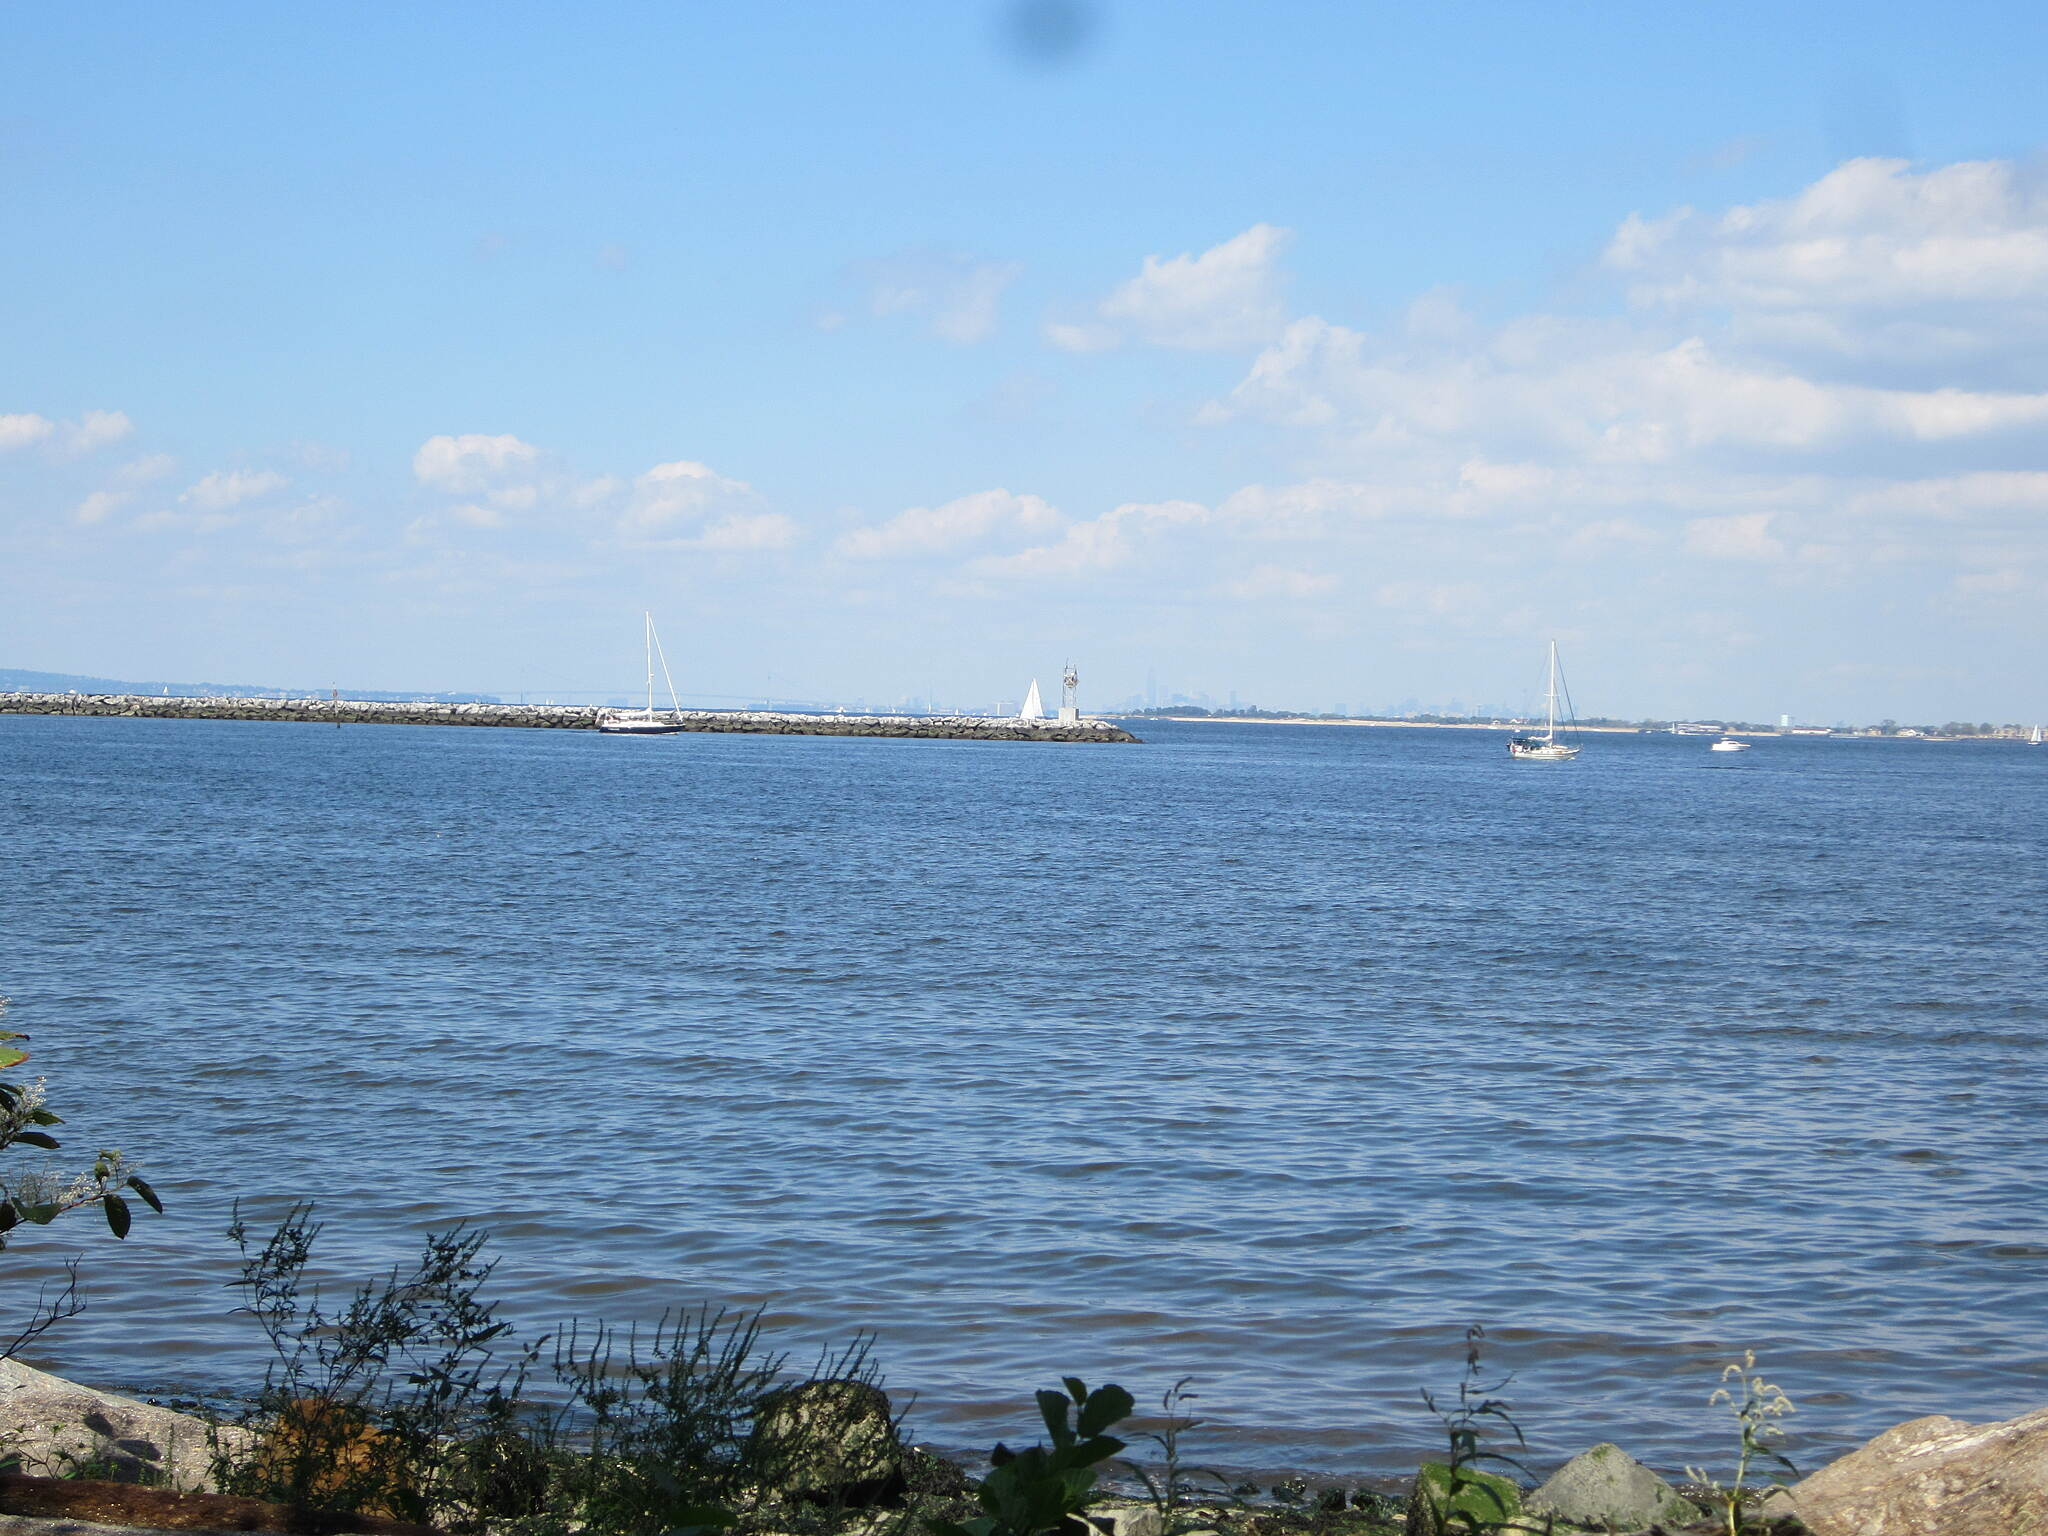 Bayshore Trail (Henry Hudson Trail) View The view from the bench